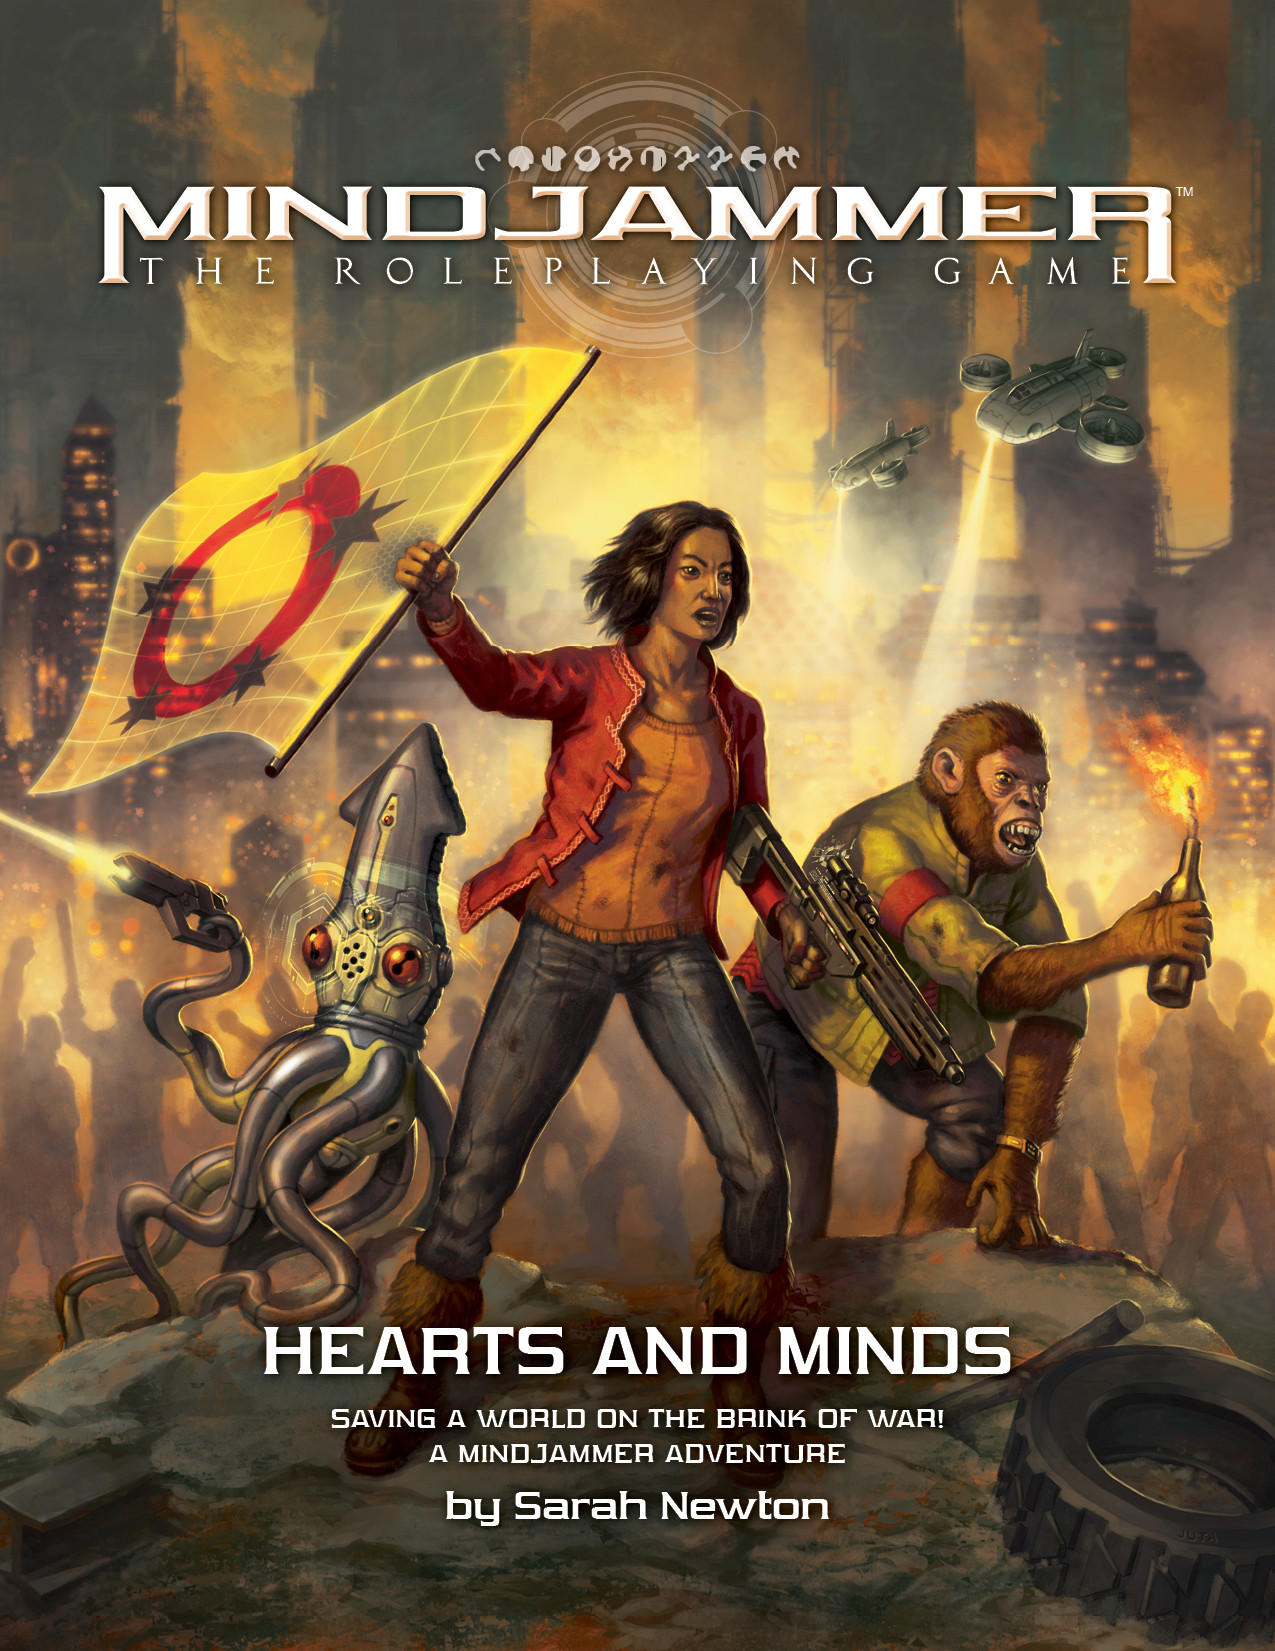 Mindjammer Hearts And Minds Mindjammer Press